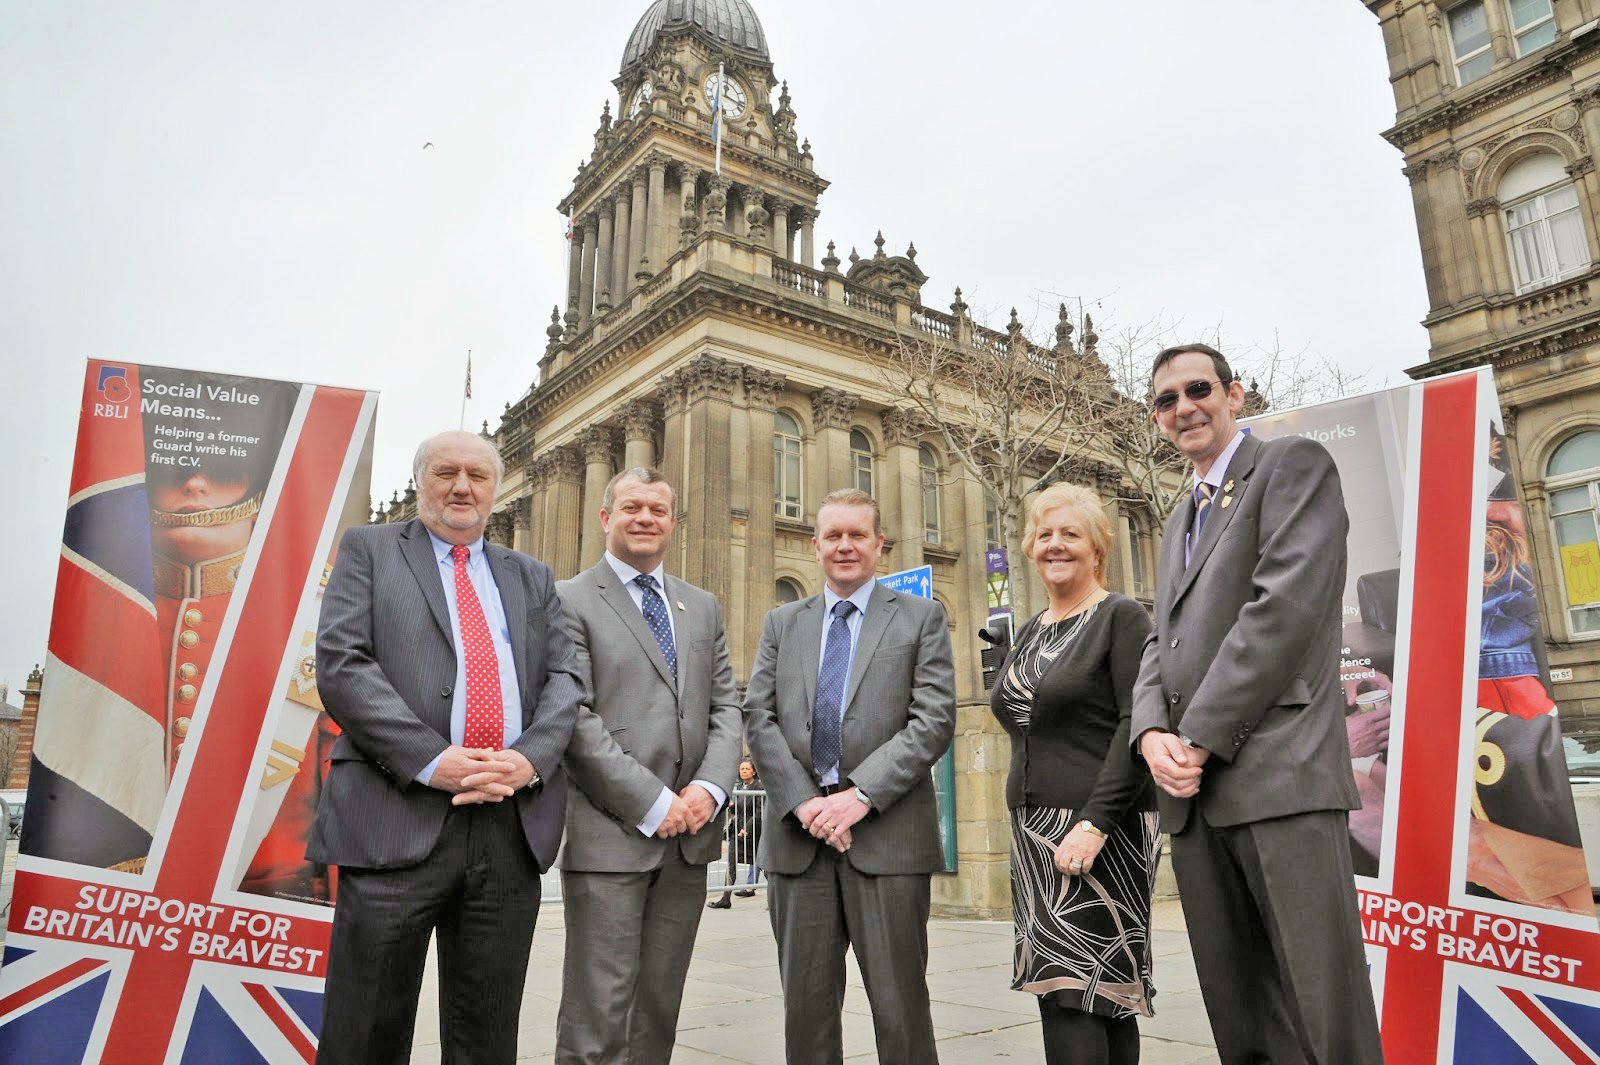 Leeds City Council Joins Military Charity In Offering Employment And Training To Local Veterans